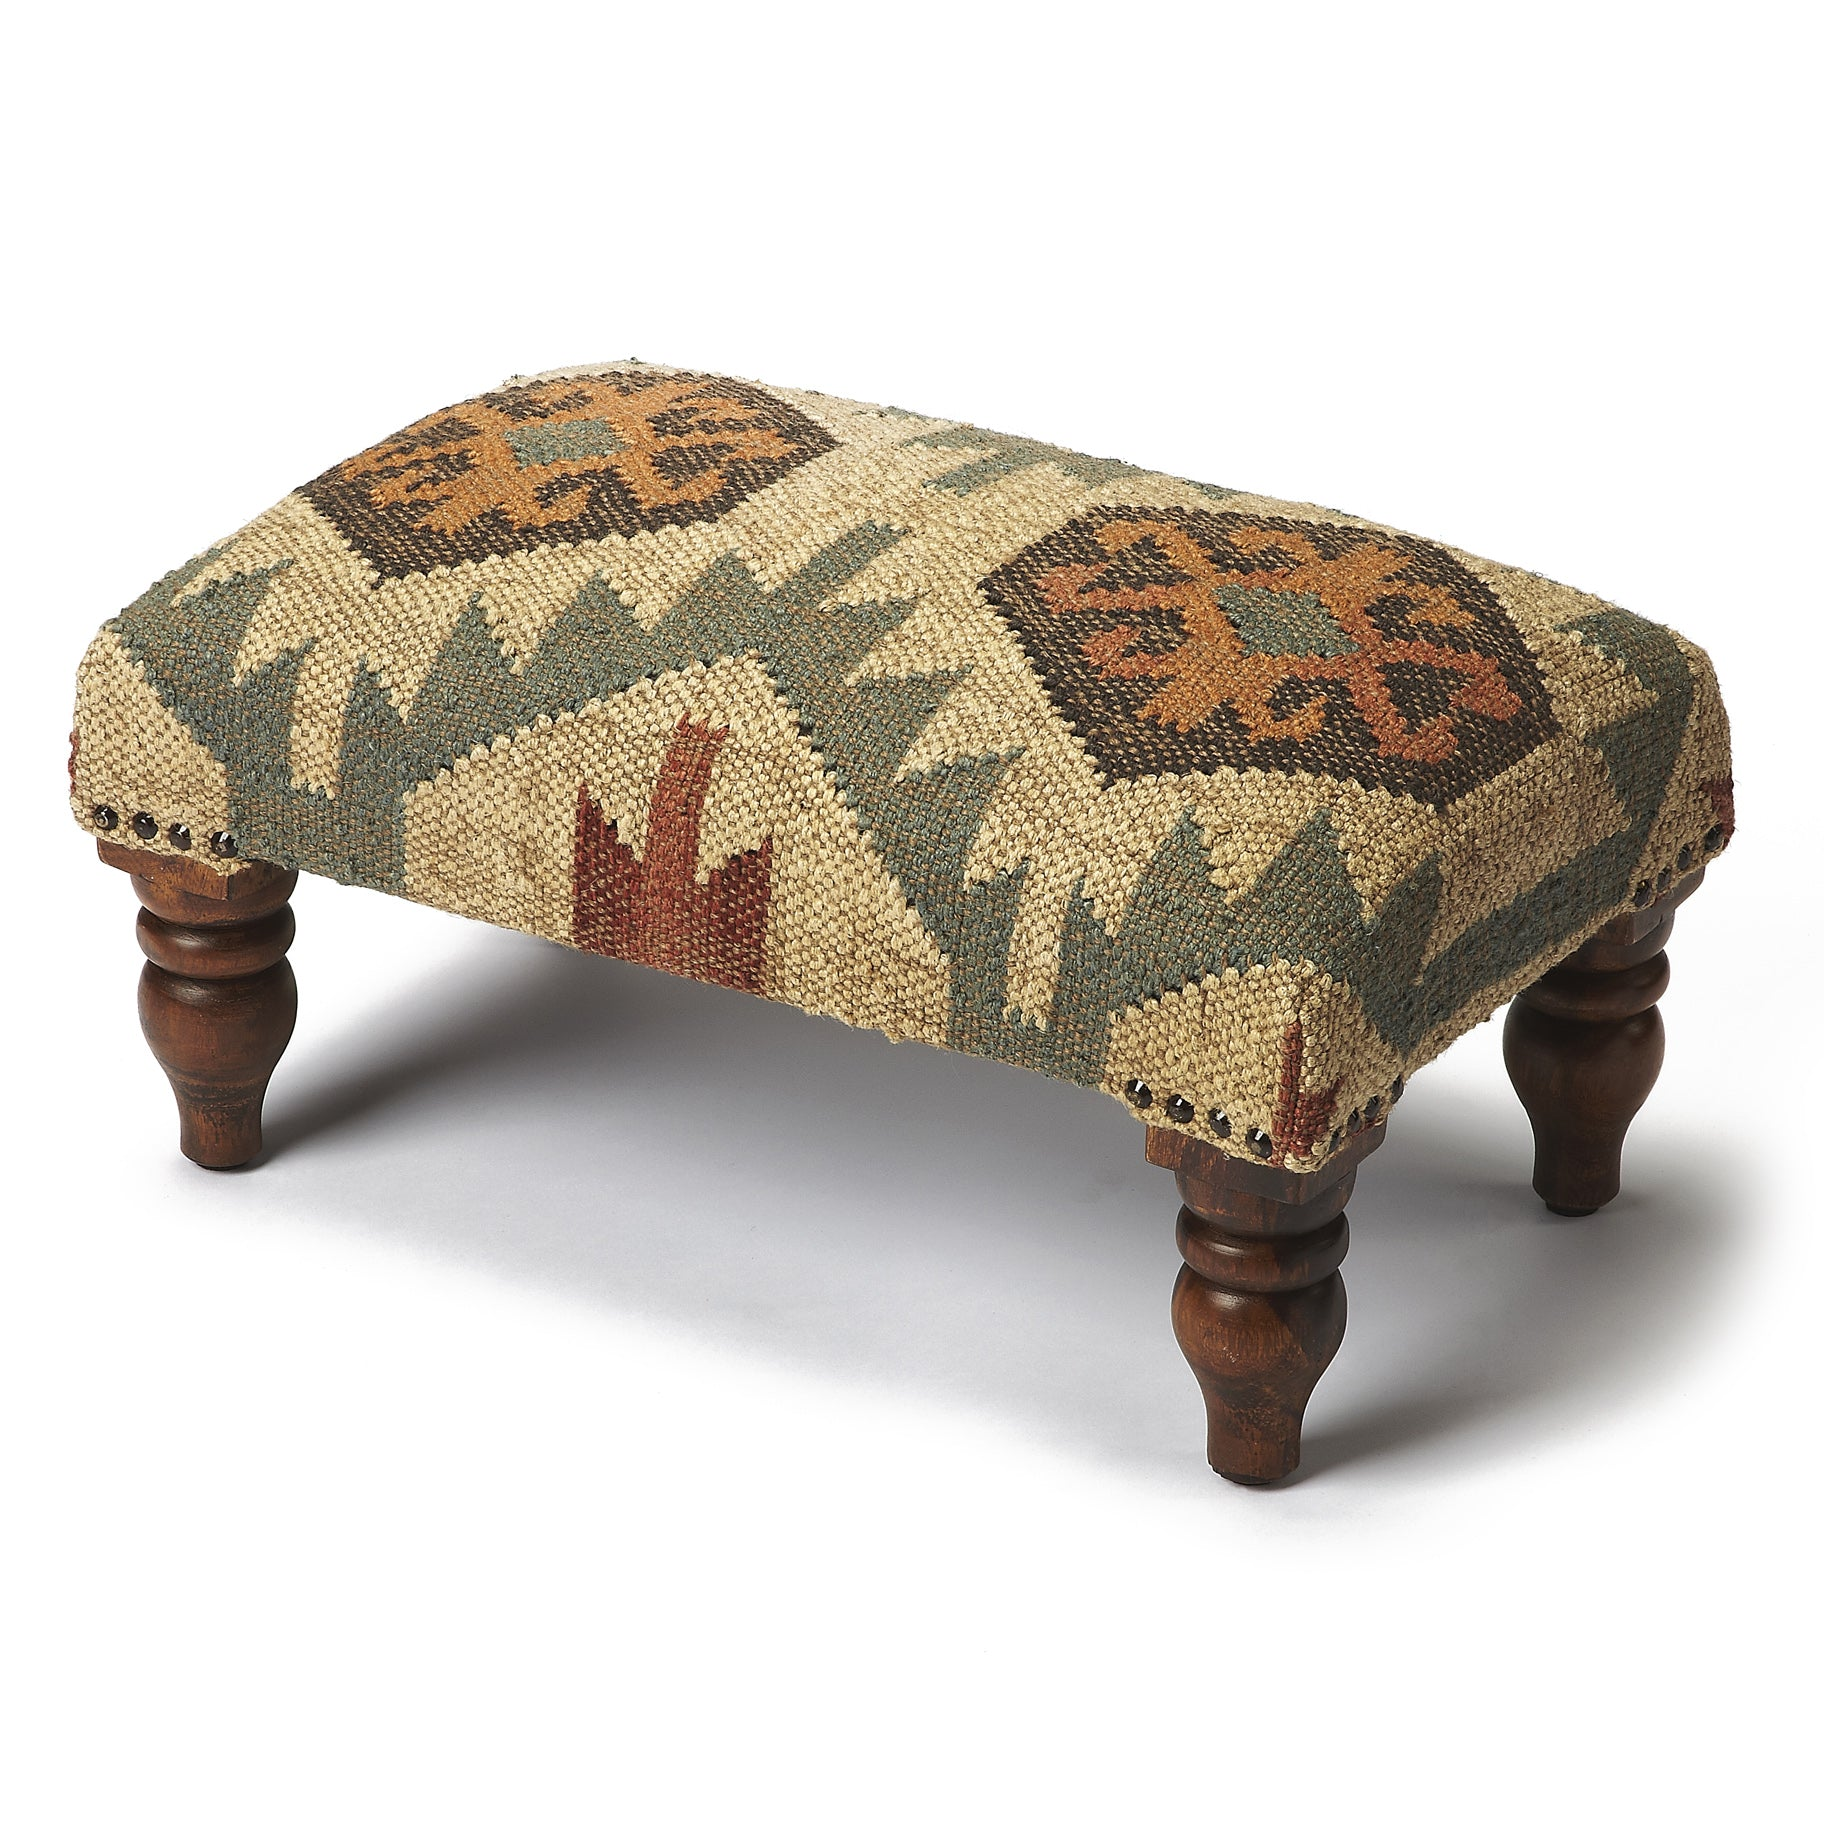 Rustic Southwest Jute and Wood Ottoman